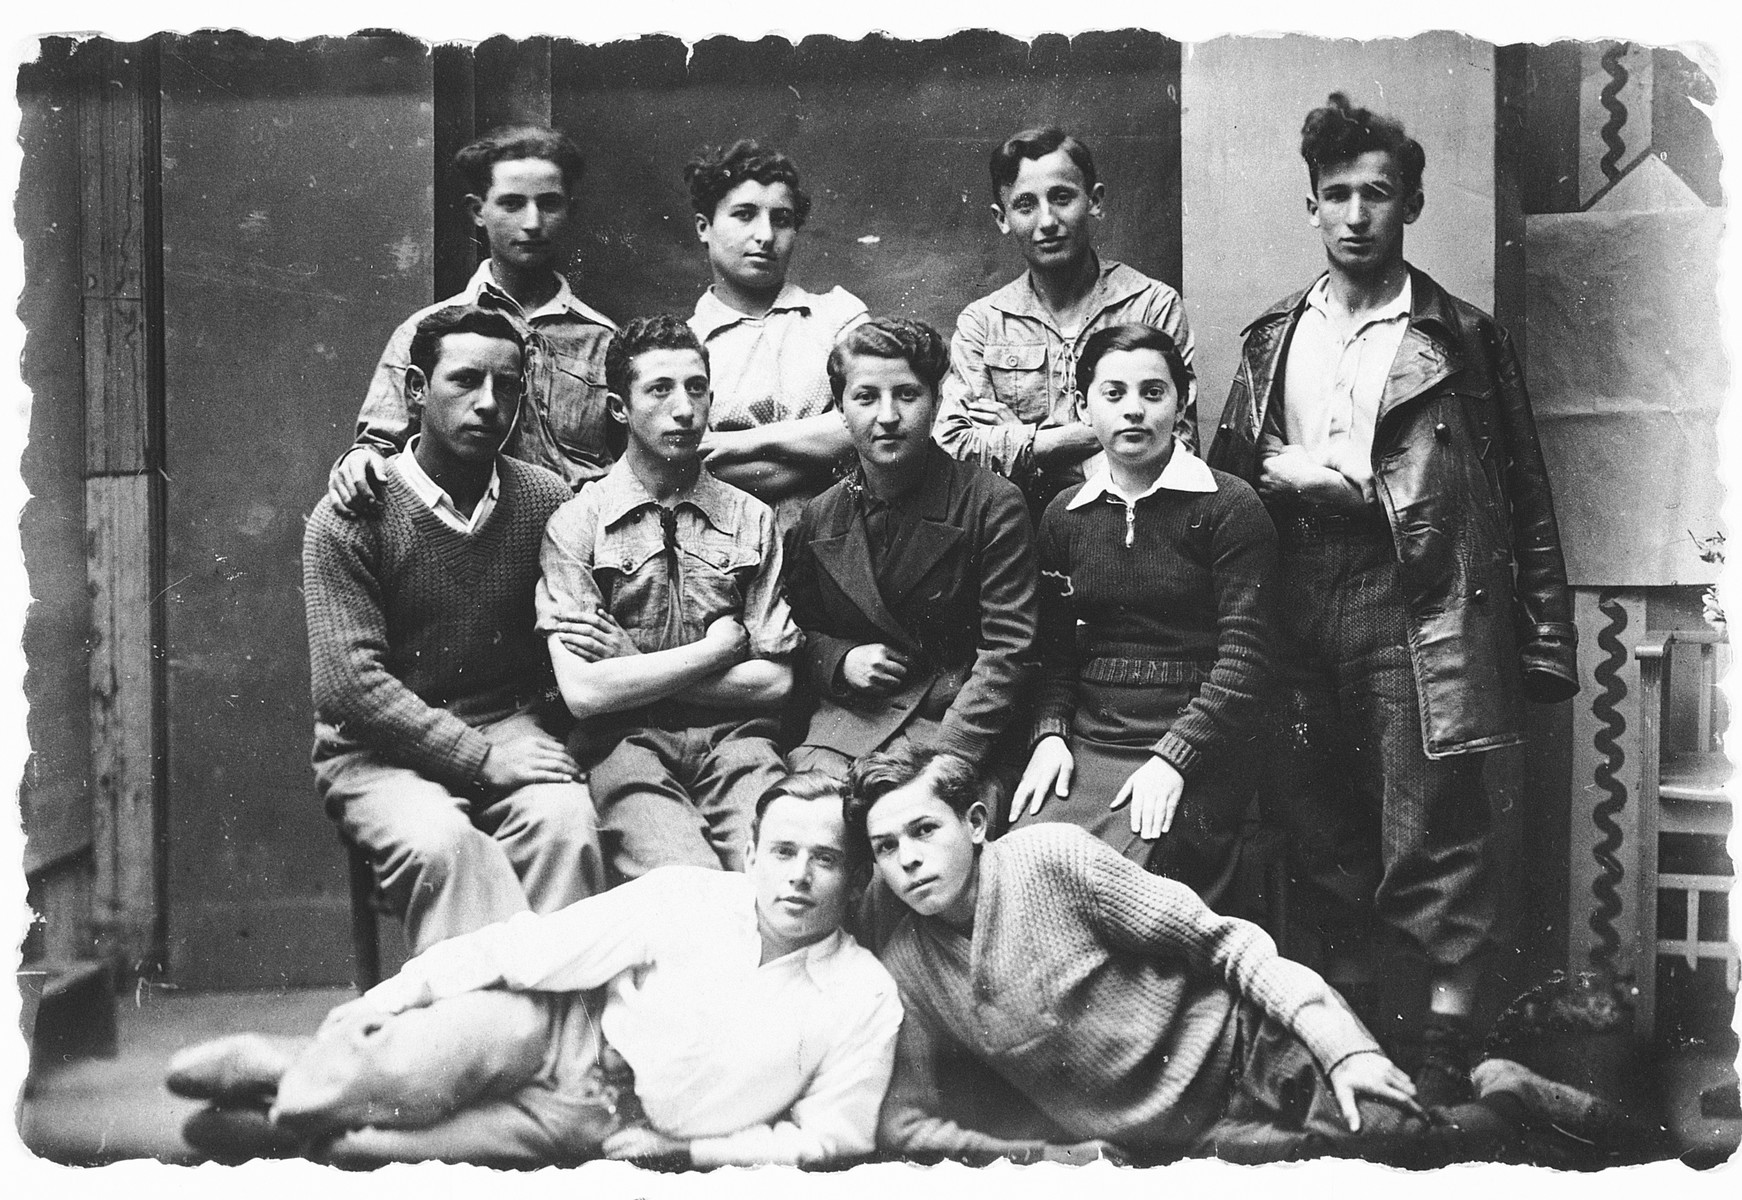 Group portrait of ten young people, members of either Hehalutz or Hashomer Hatsair.  Among those pictured are Leah Rutstein and Neshka Rosenberg.